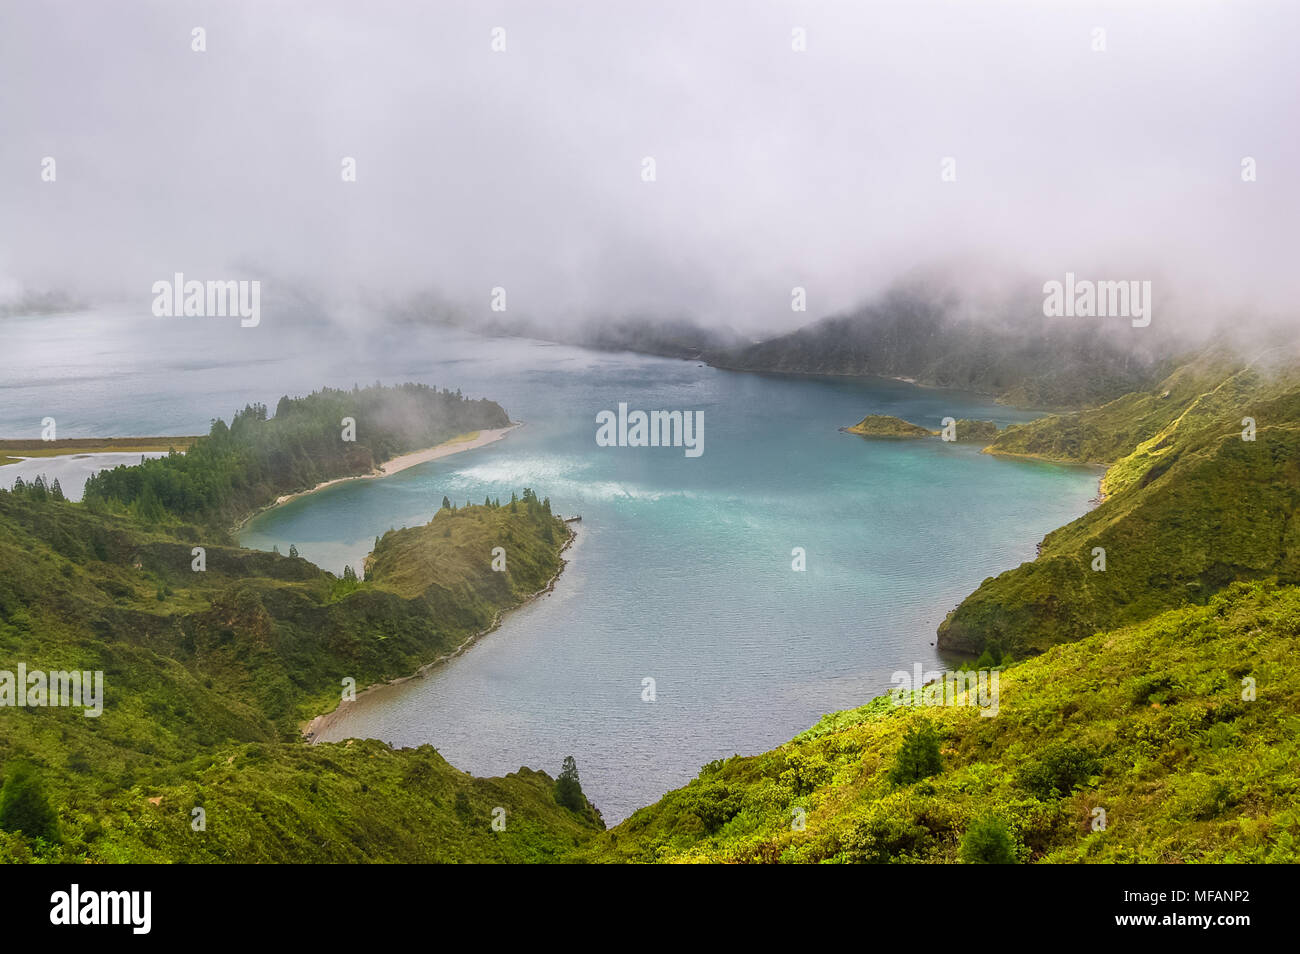 Sete Cidades lake view on Azores Islands in Portugal. Stock Photo